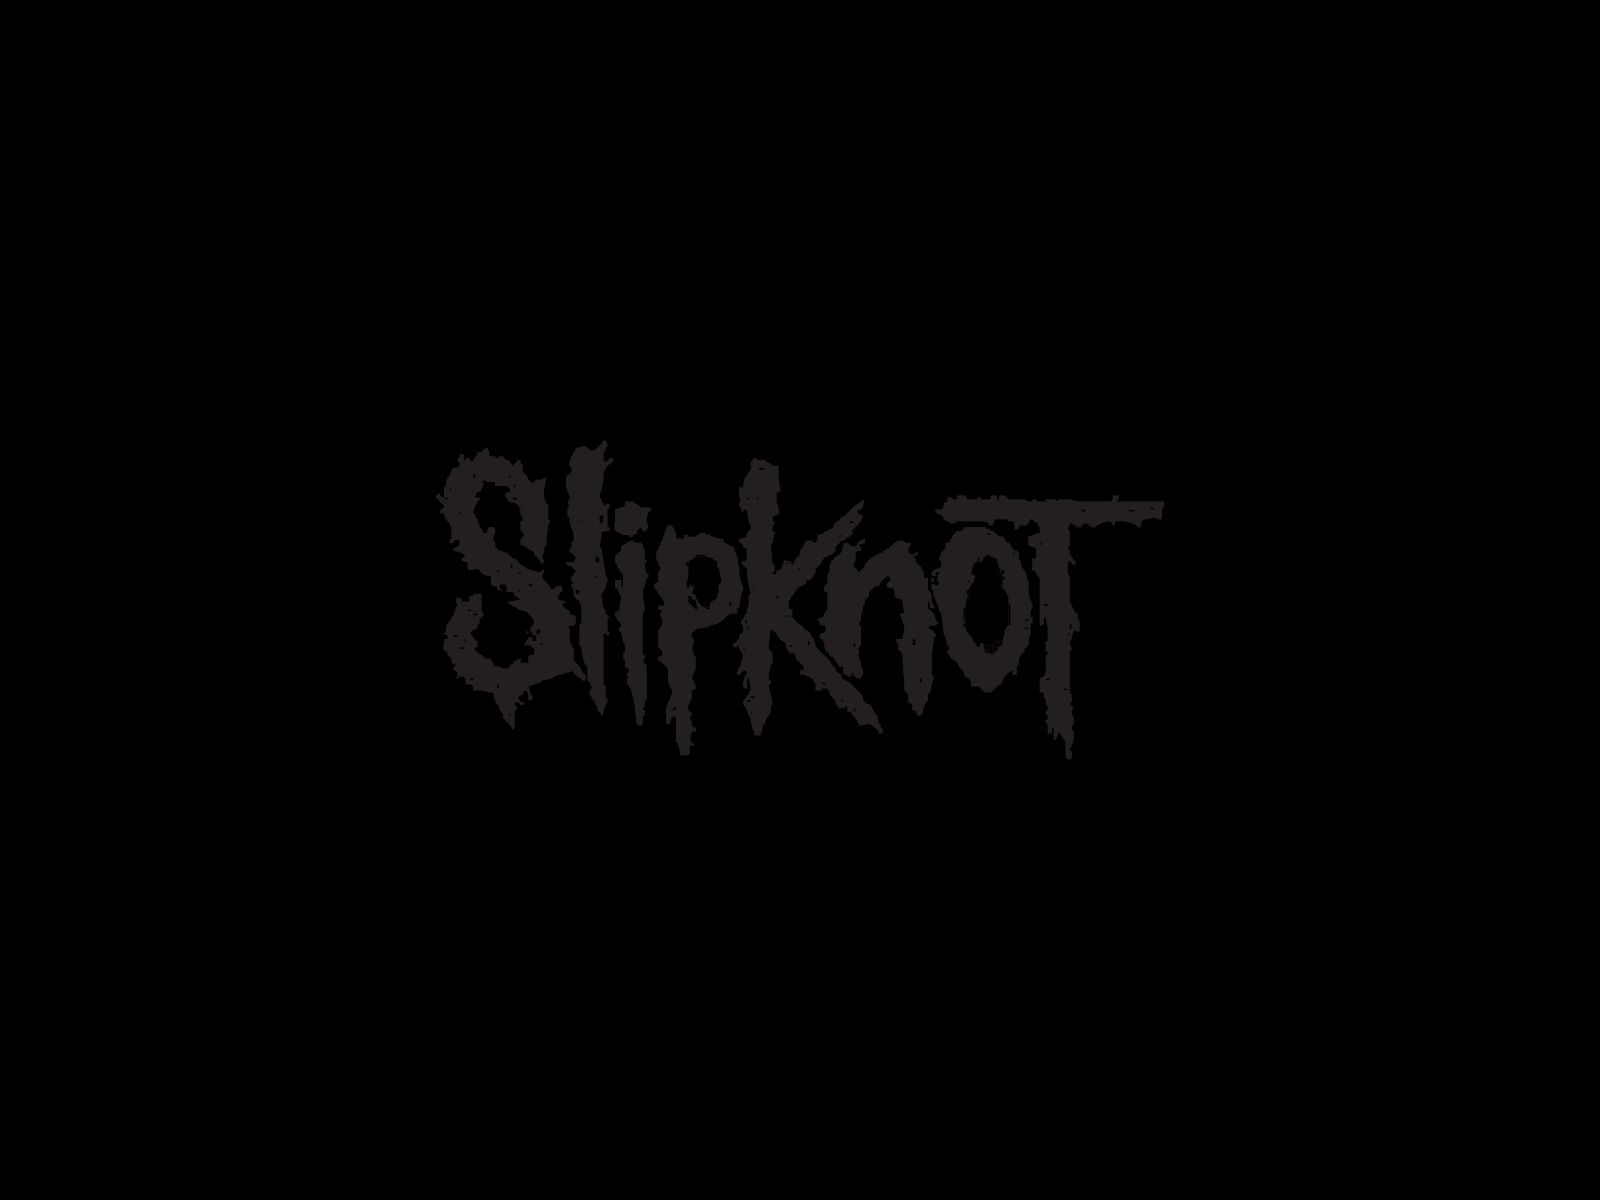 Slipknot wallpapers hd a8 hd desktop wallpapers 4k hd slipknot wallpapers hd black background voltagebd Image collections